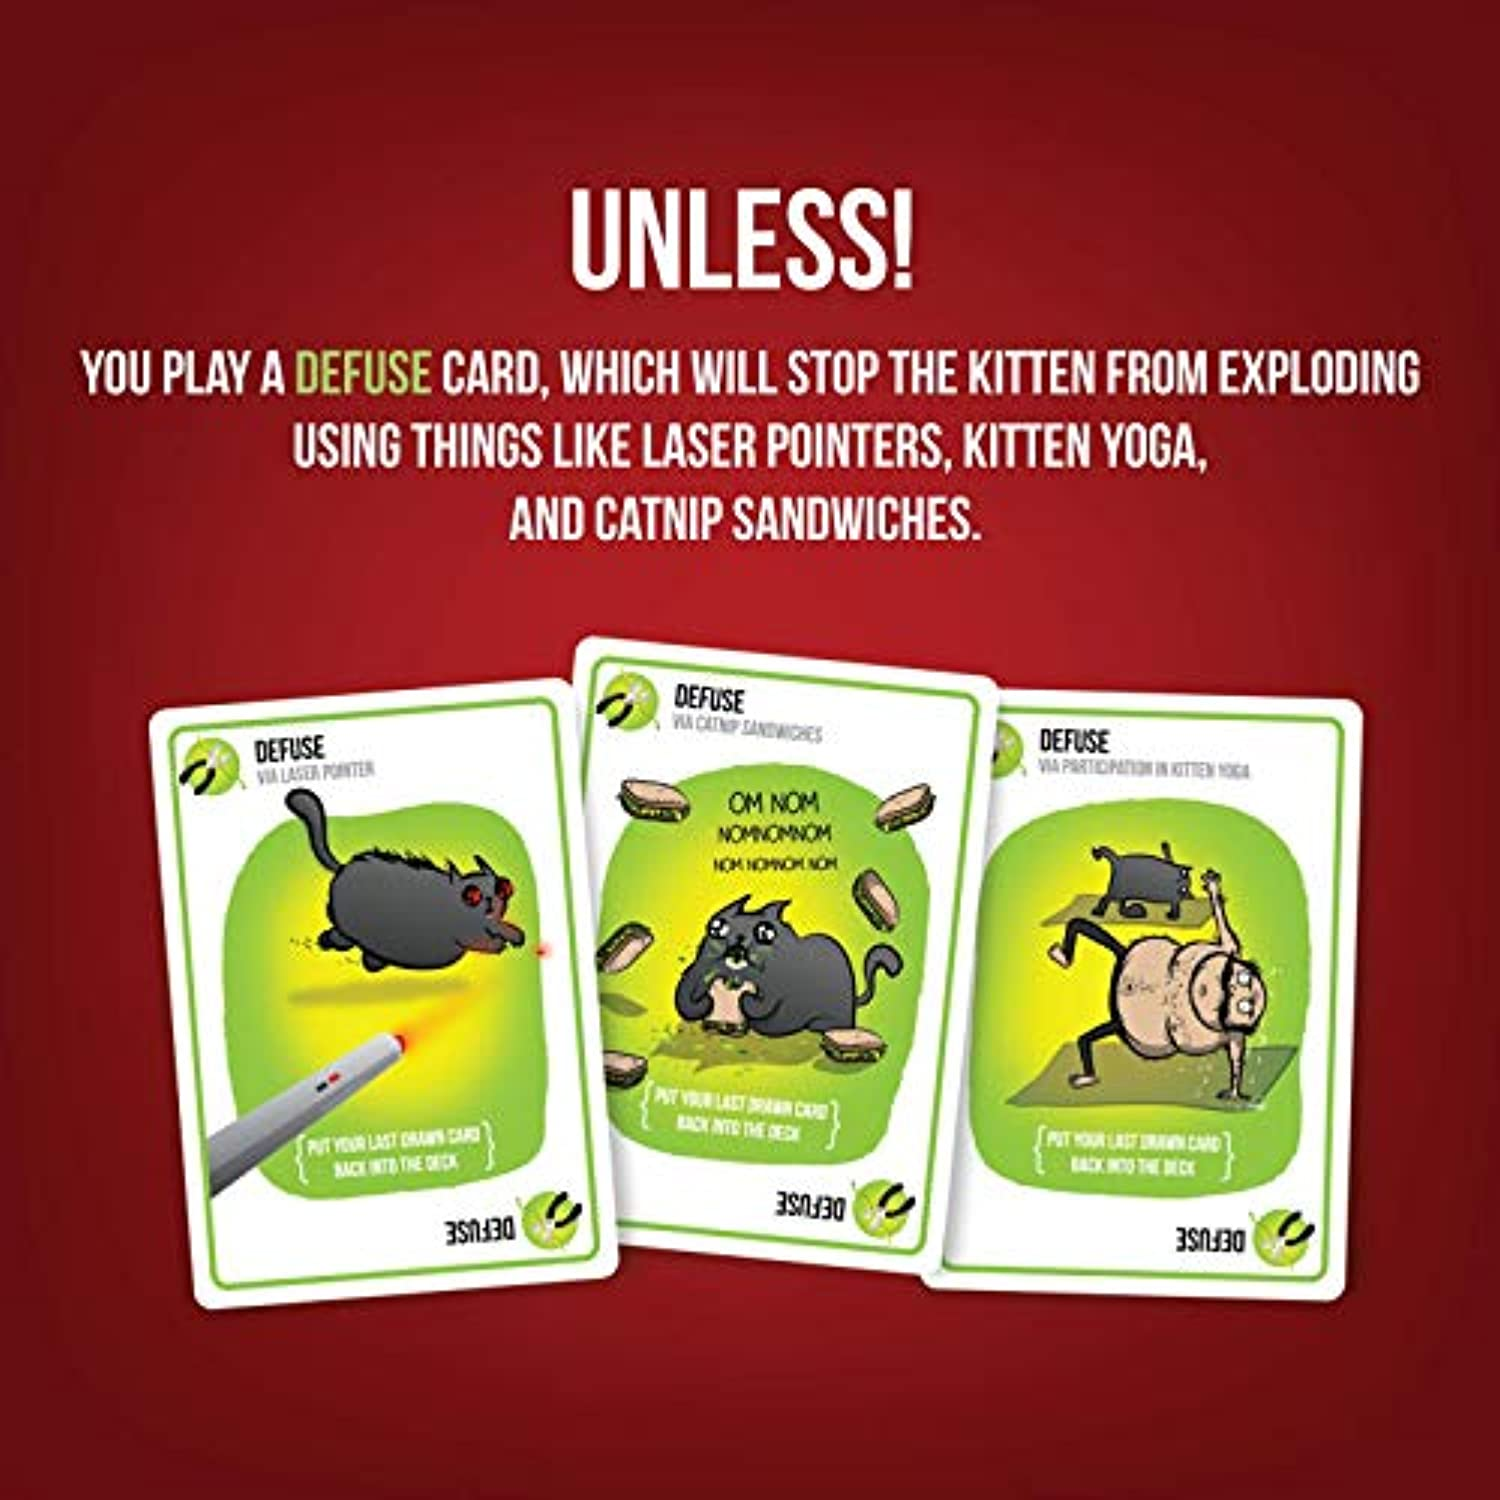 Classier: Buy Exploding Kittens LLC Exploding Kittens Card Game - Family-Friendly Party Games - Card Games For Adults, Teens & Kids